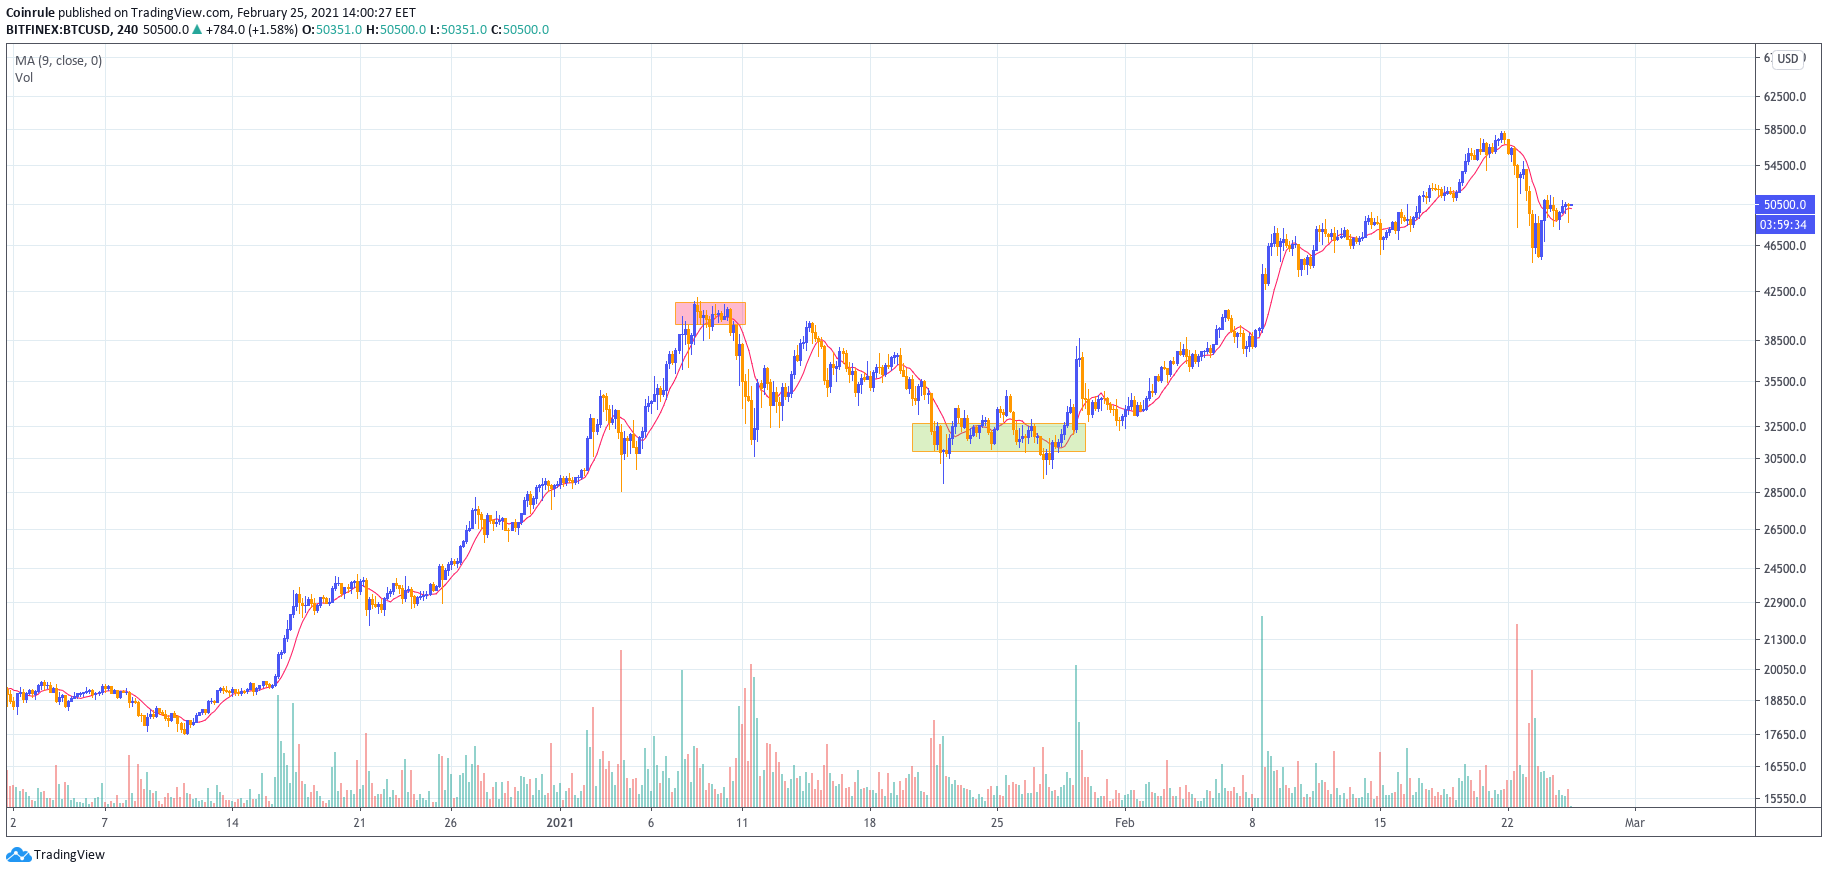 Moving Average adapts to teh trend